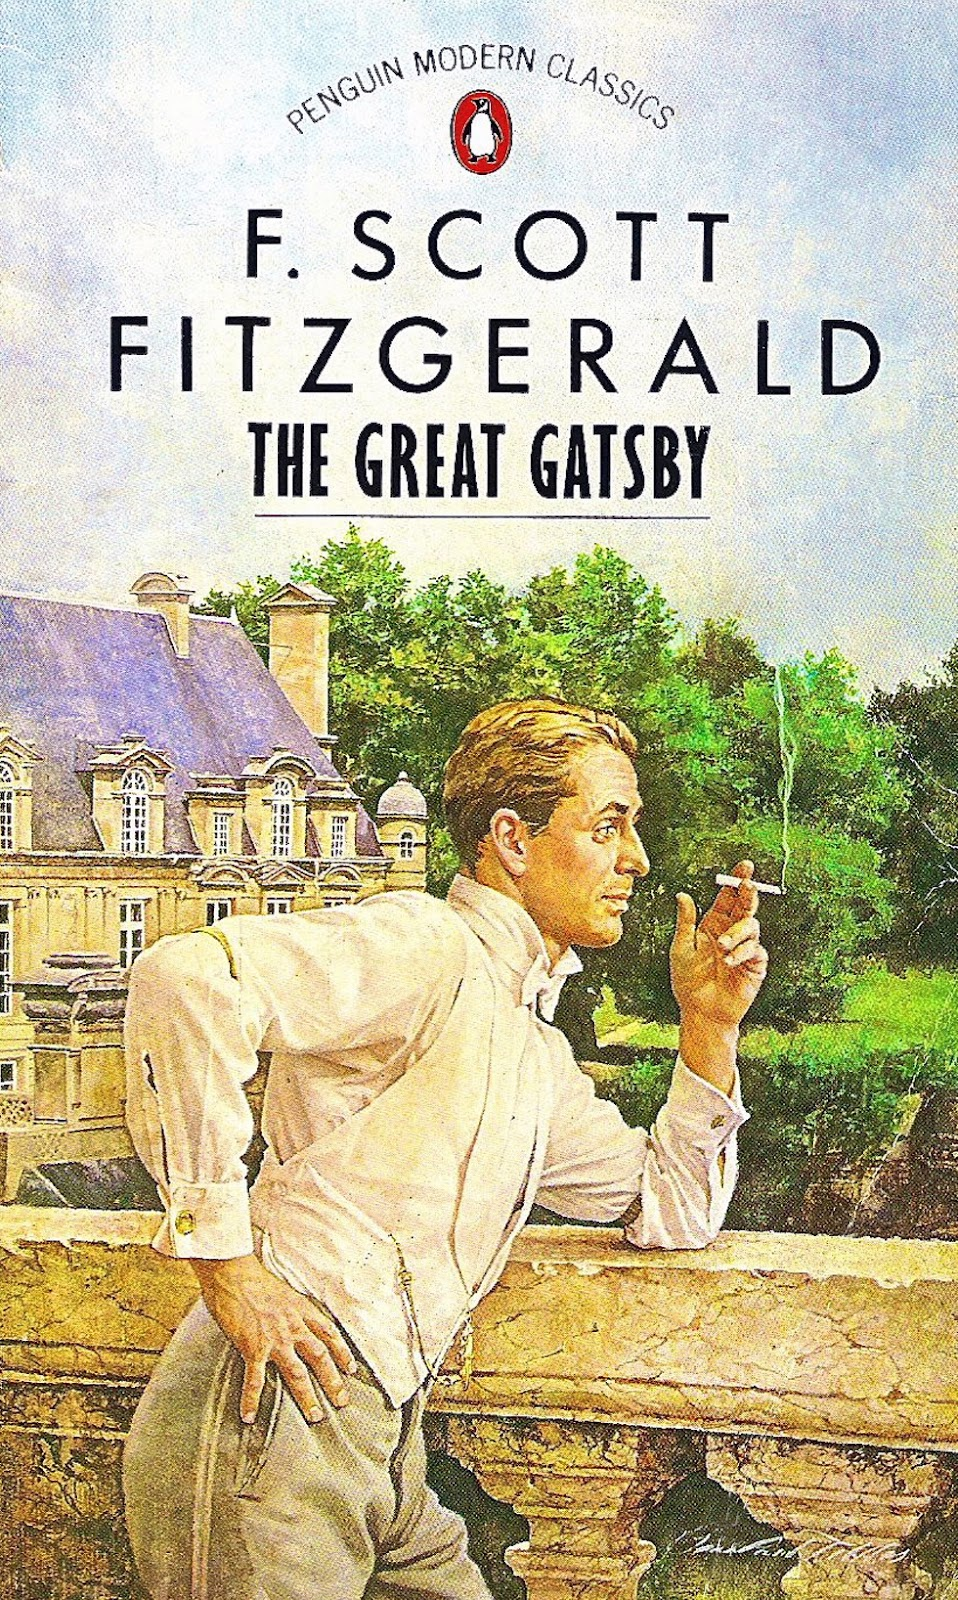 gatsby divisons between rich and poor This division between communities reveals the social split between the rich this highlights how gatsby's dream of daisy's love is already impossible because despite his enormous wealth, he will never truly be accepted into the american upper class.